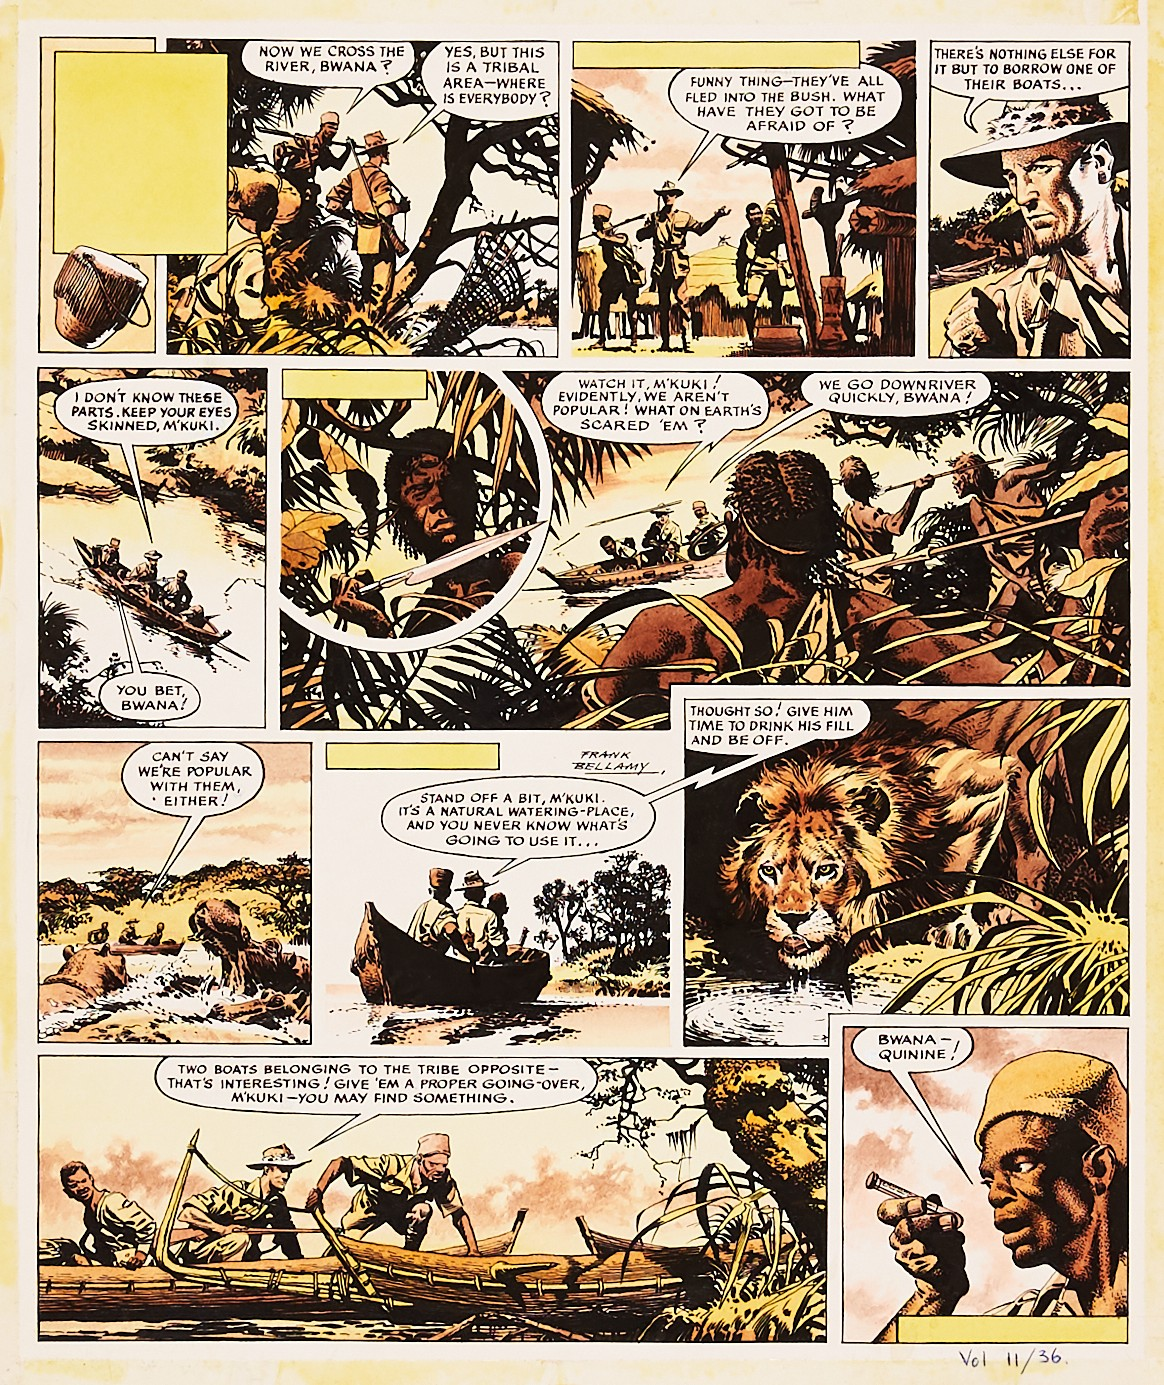 Fraser of Africa/Eagle original artwork (1960) drawn, painted and signed by Frank Bellamy from The